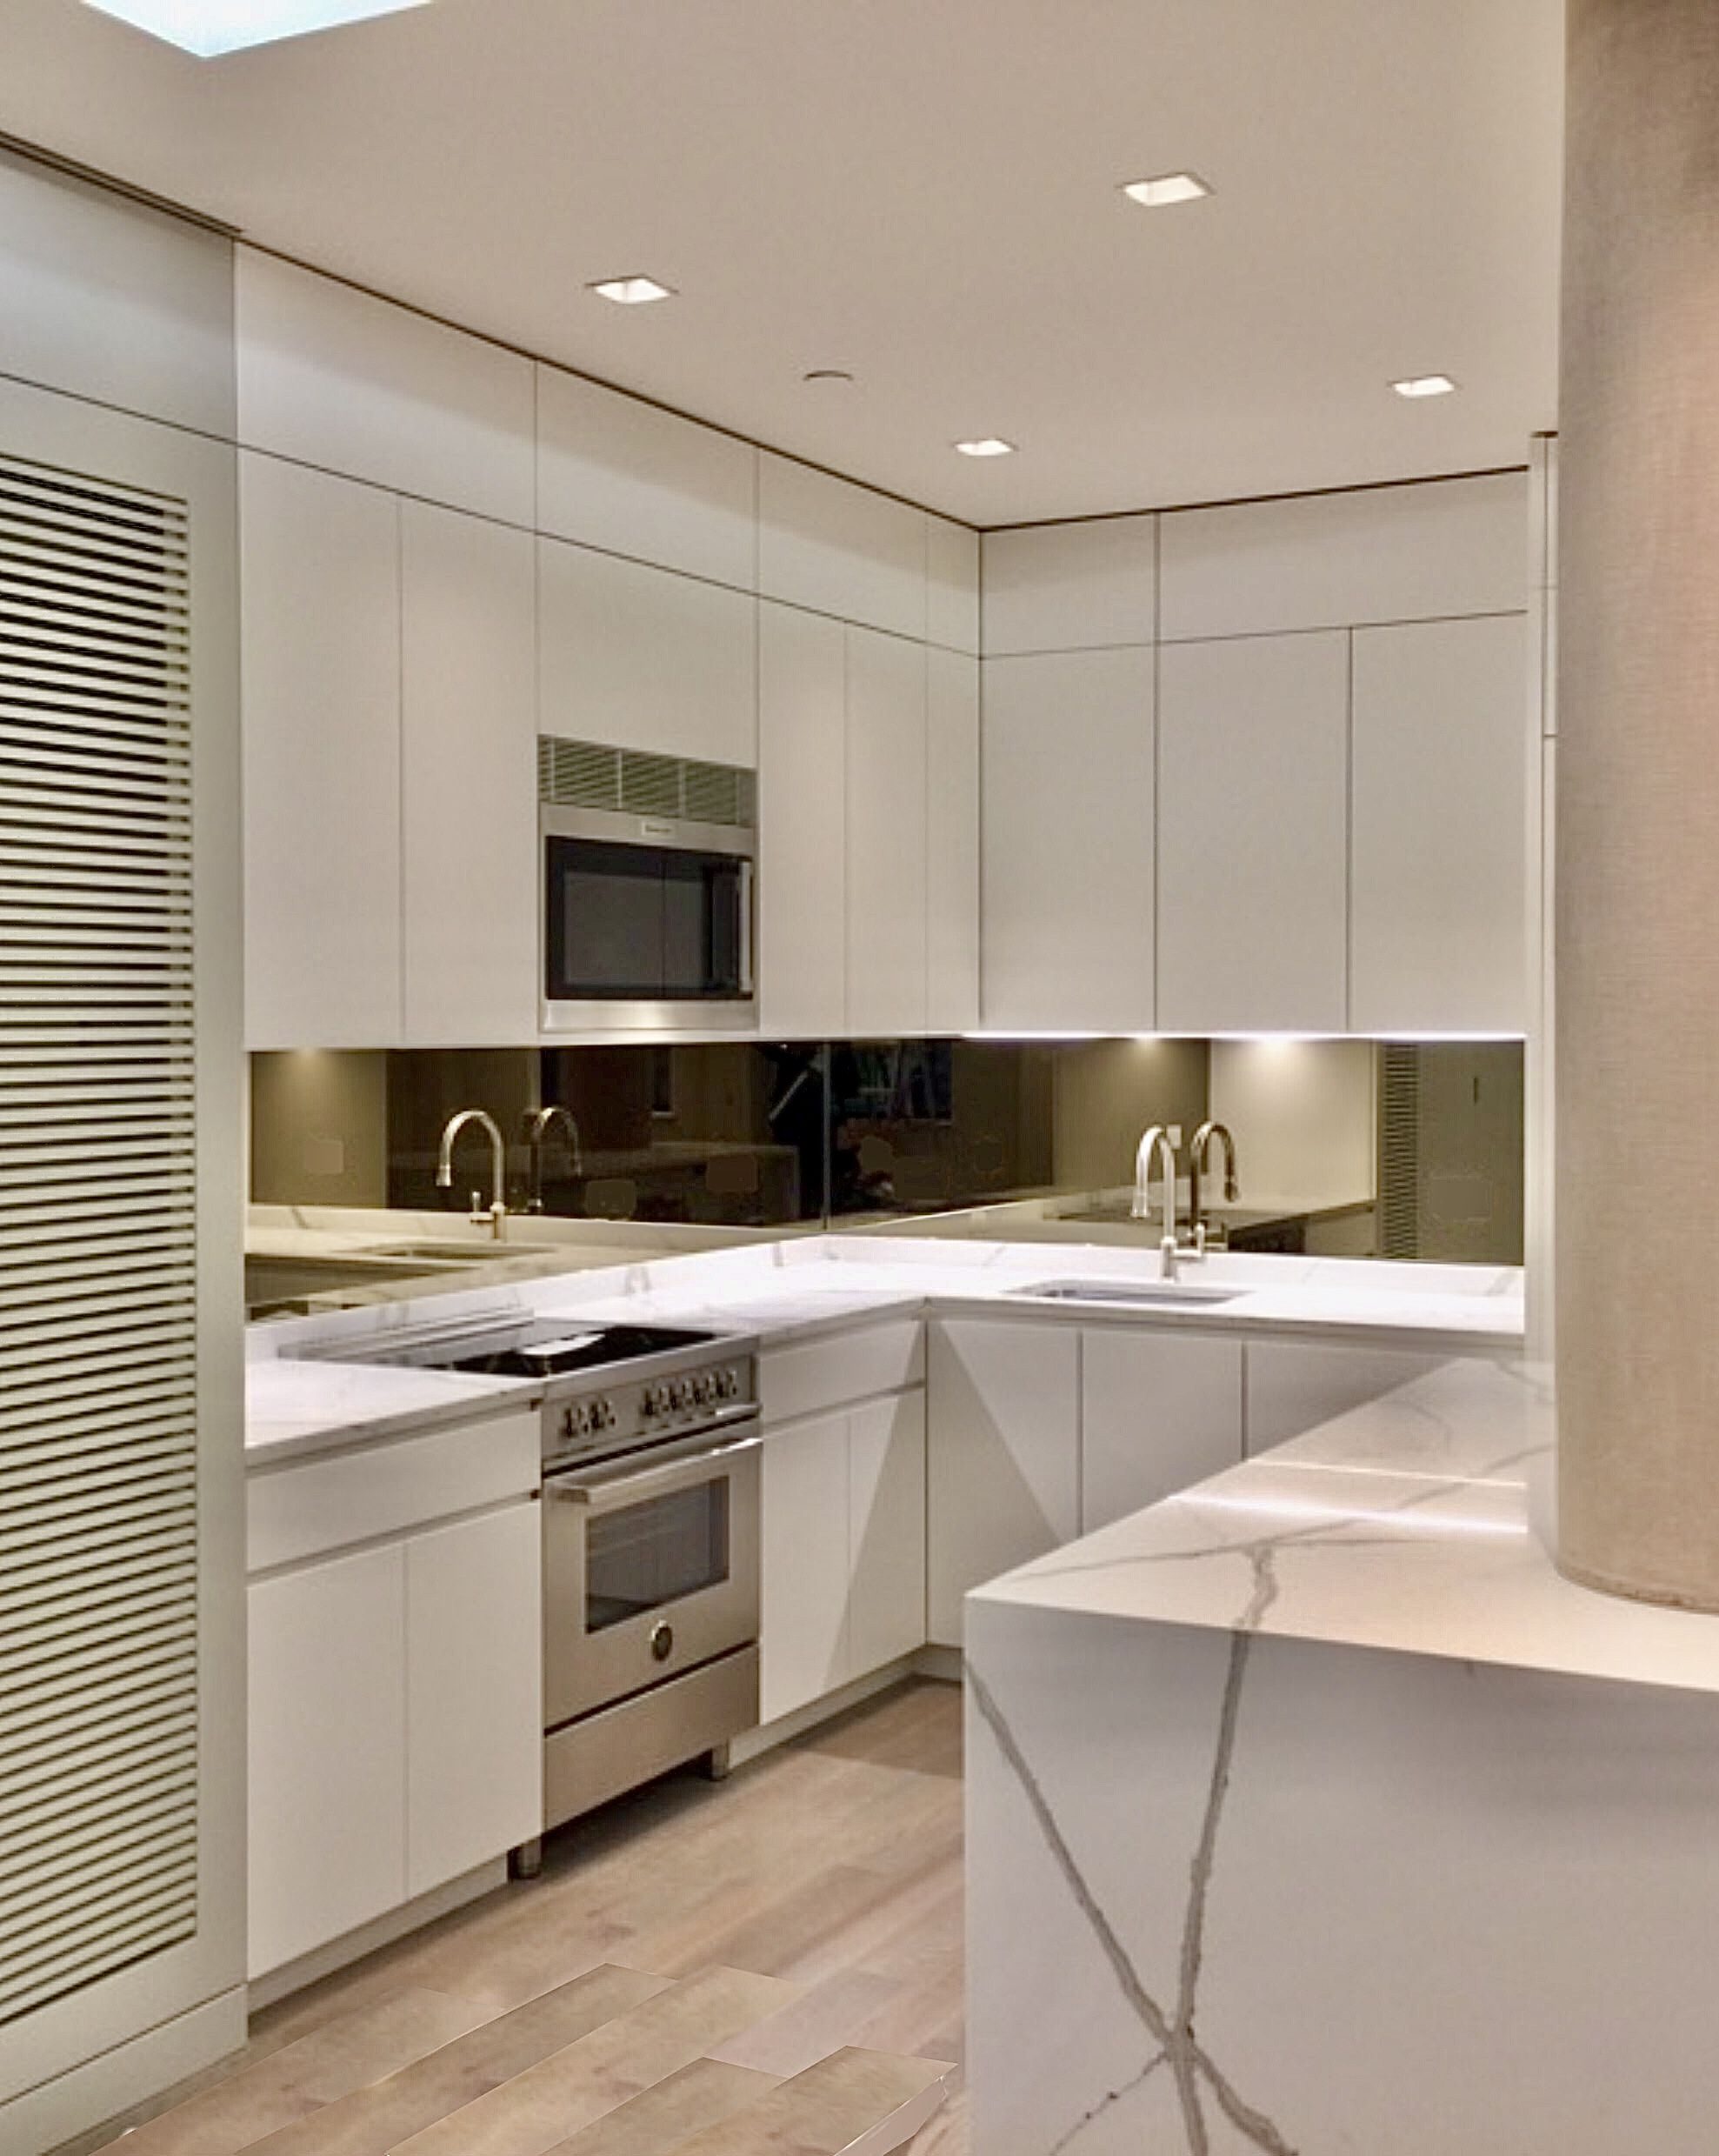 Kitchen - modern cabinetry with finger pulls for ...